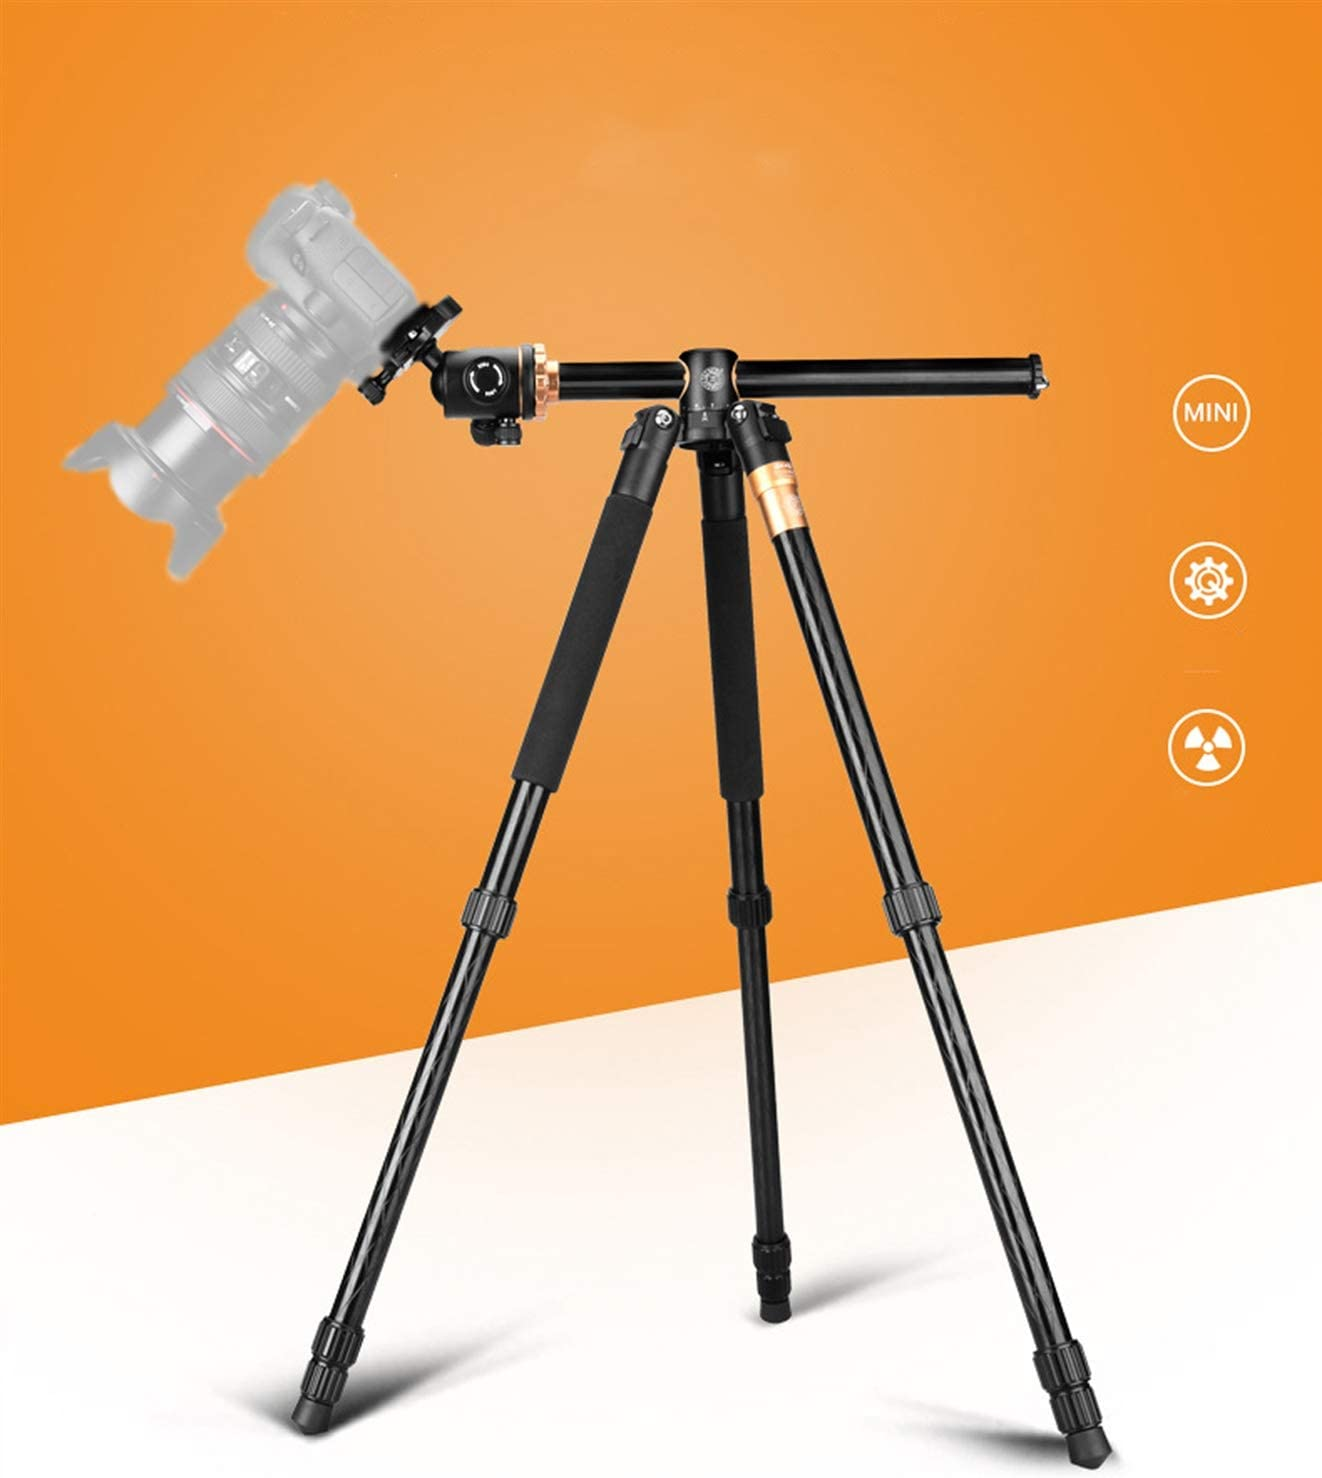 Universal Support for Macro Shooting in mounting Screws Color : Black LLluckyHW Tripod and monopod Suitable for Vlog Travel and Work 1//4